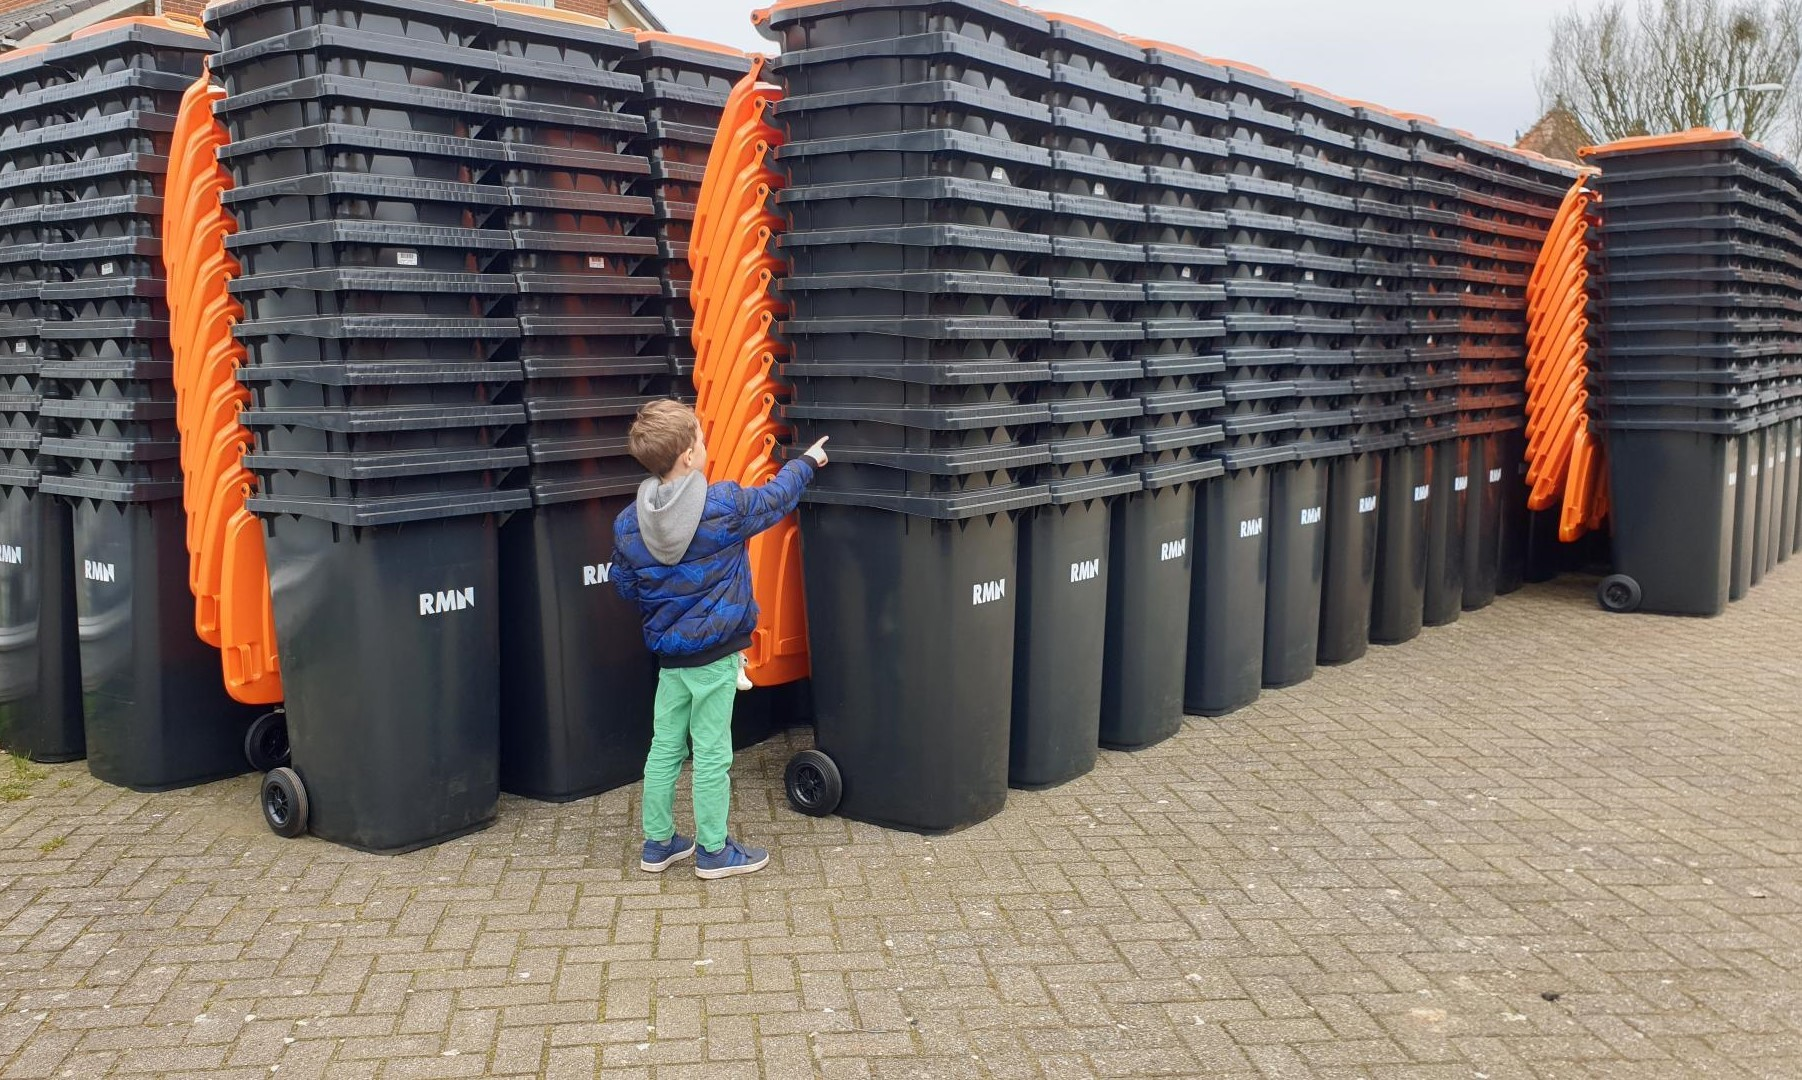 Stapel PMD containers